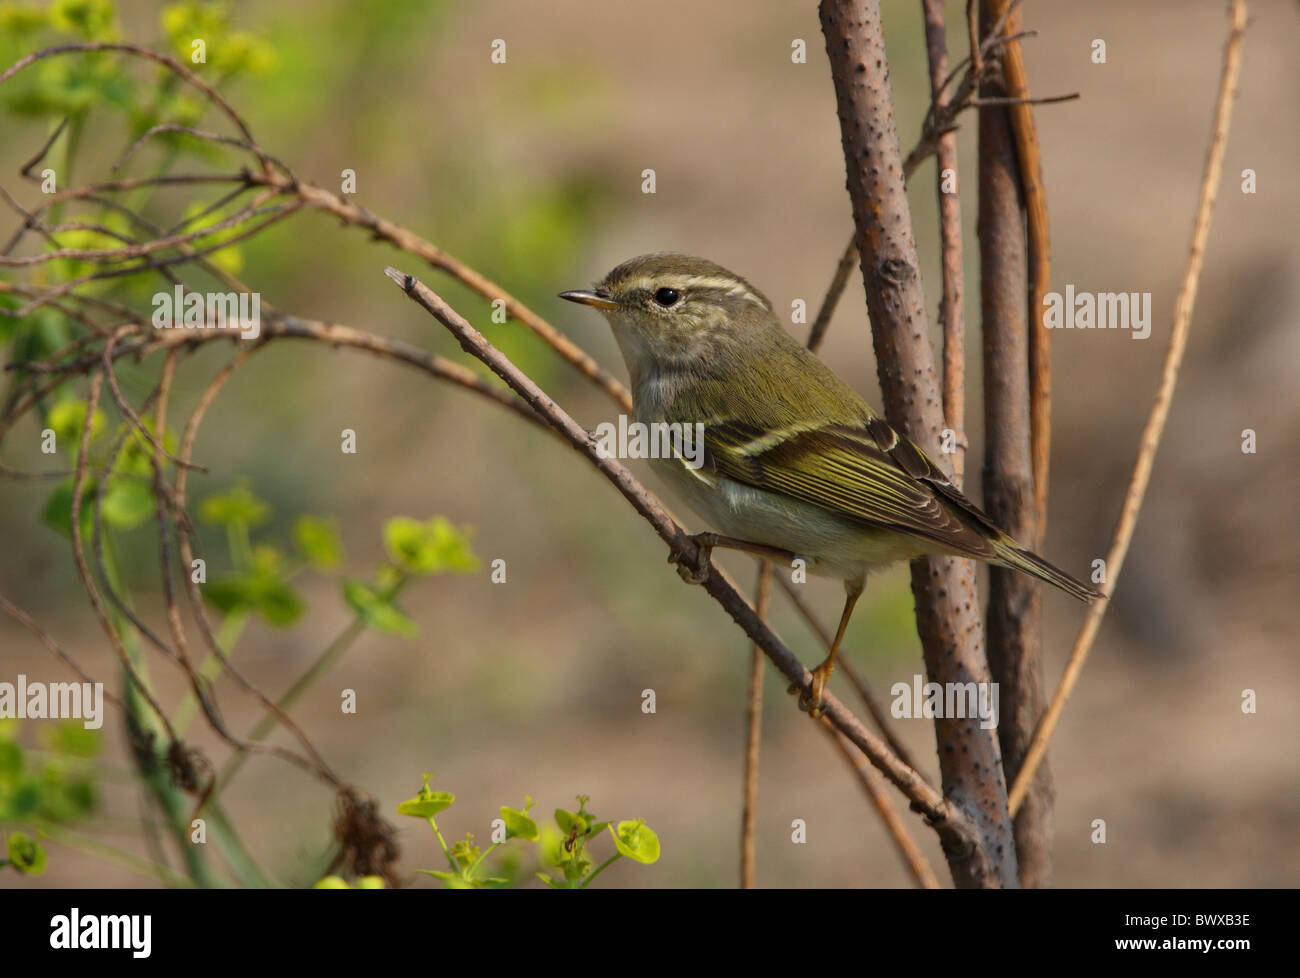 Yellow-browed Warbler (Phylloscopus inornatus) adult, perched on twig, Hebei, China, may Stock Photo